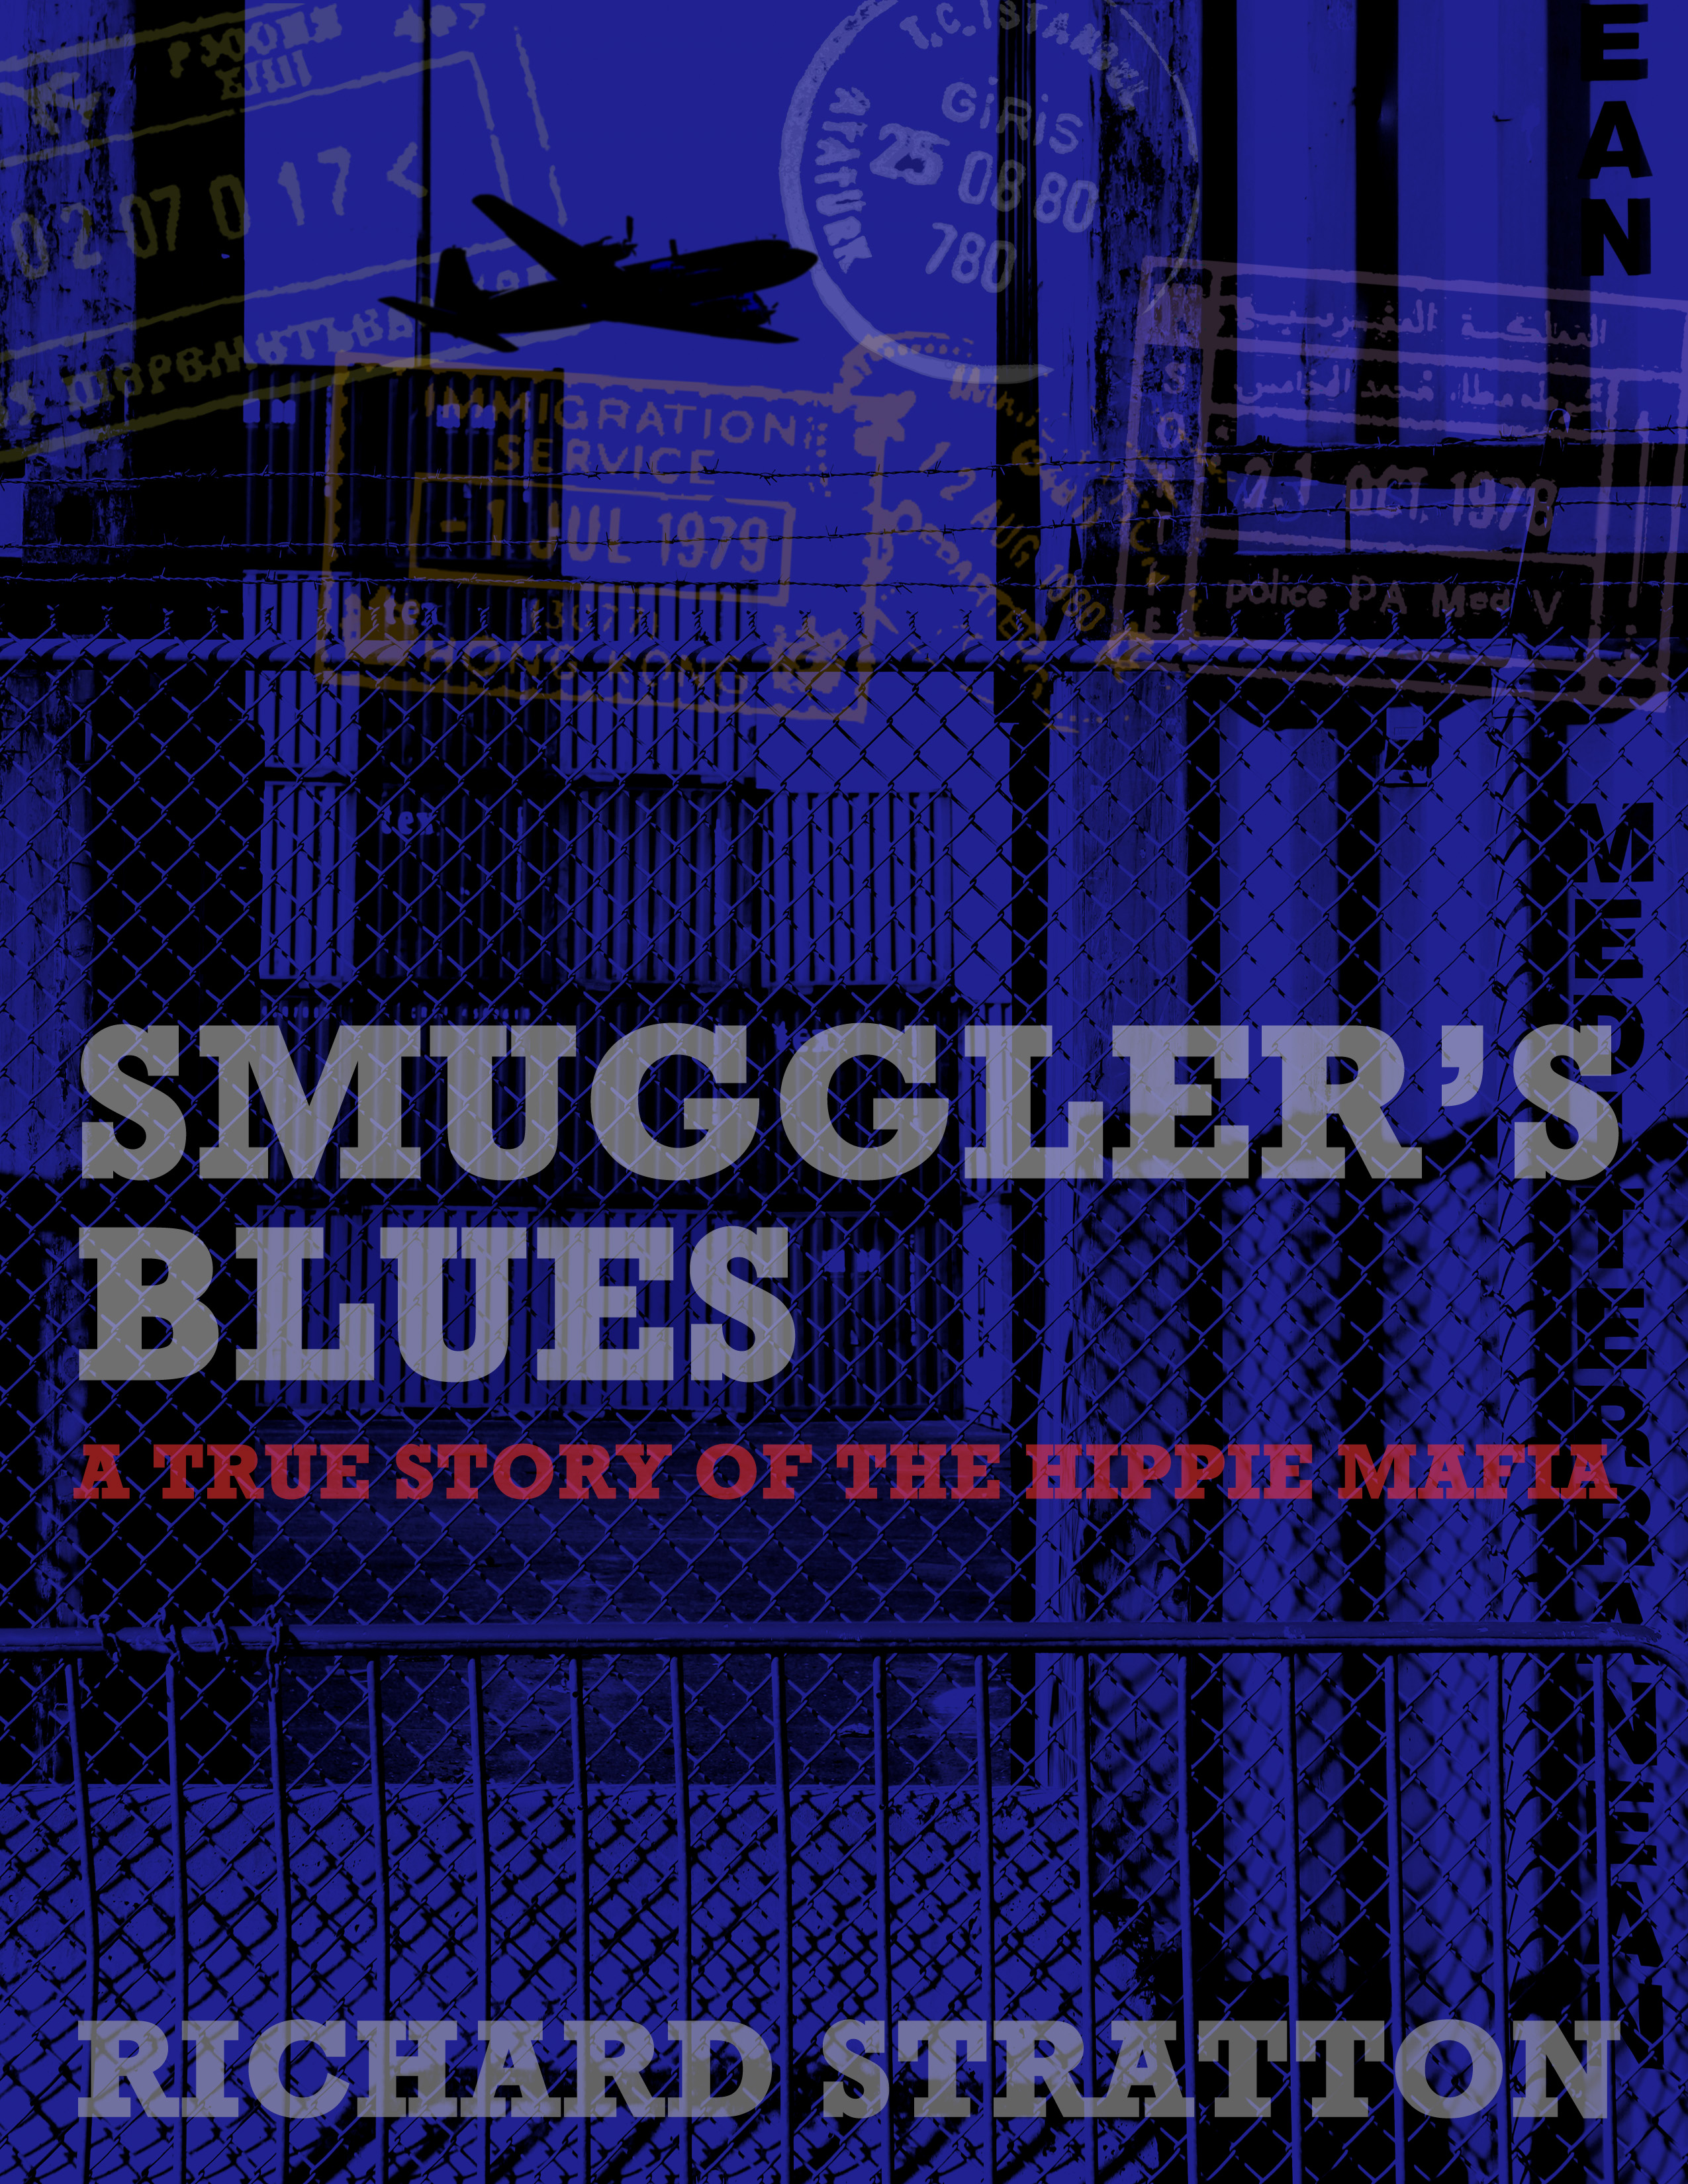 La copertina di Smuggler's Blues, di Richard Stratton.